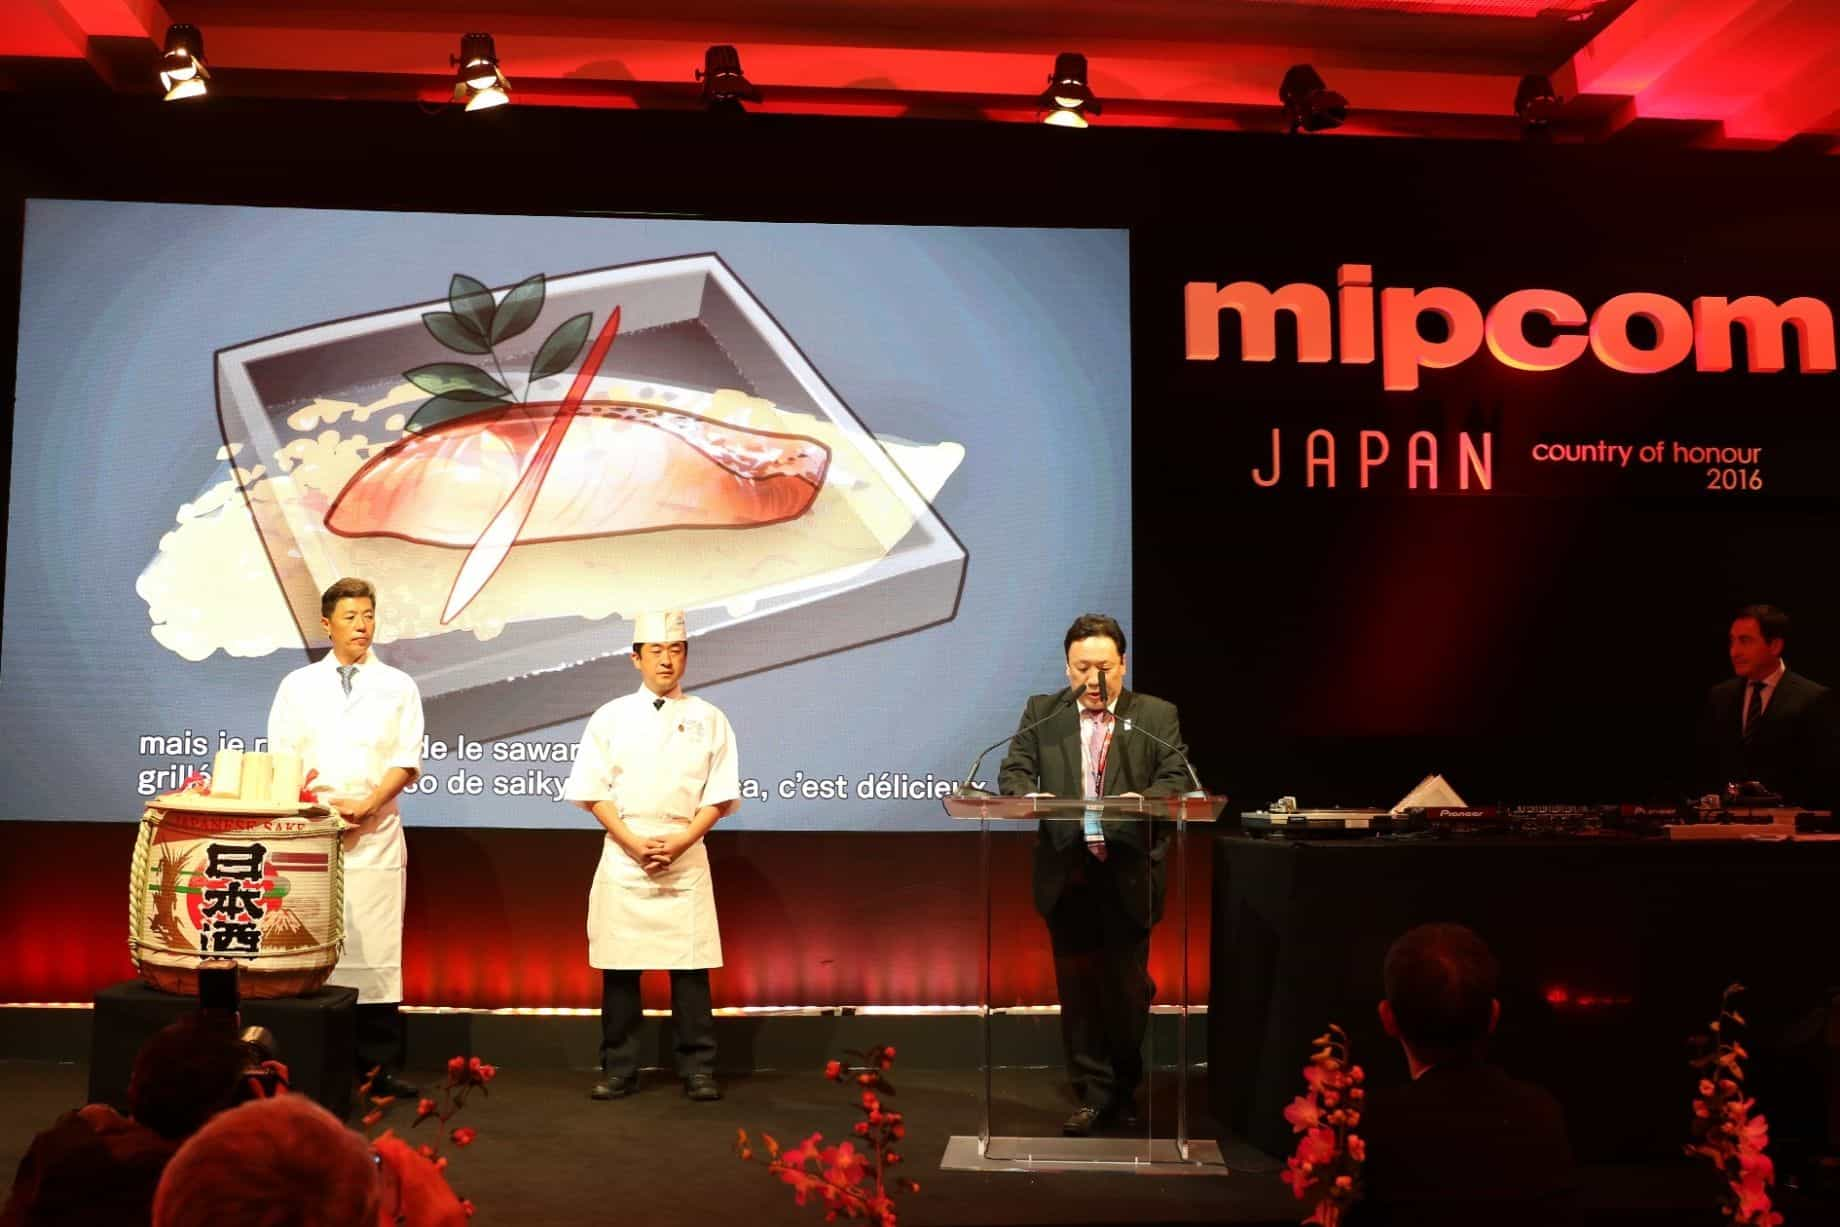 From Cannes to the world - the charm of Japanese cuisines is delivered! Report on mipcom, the world's biggest international entertainment contents market